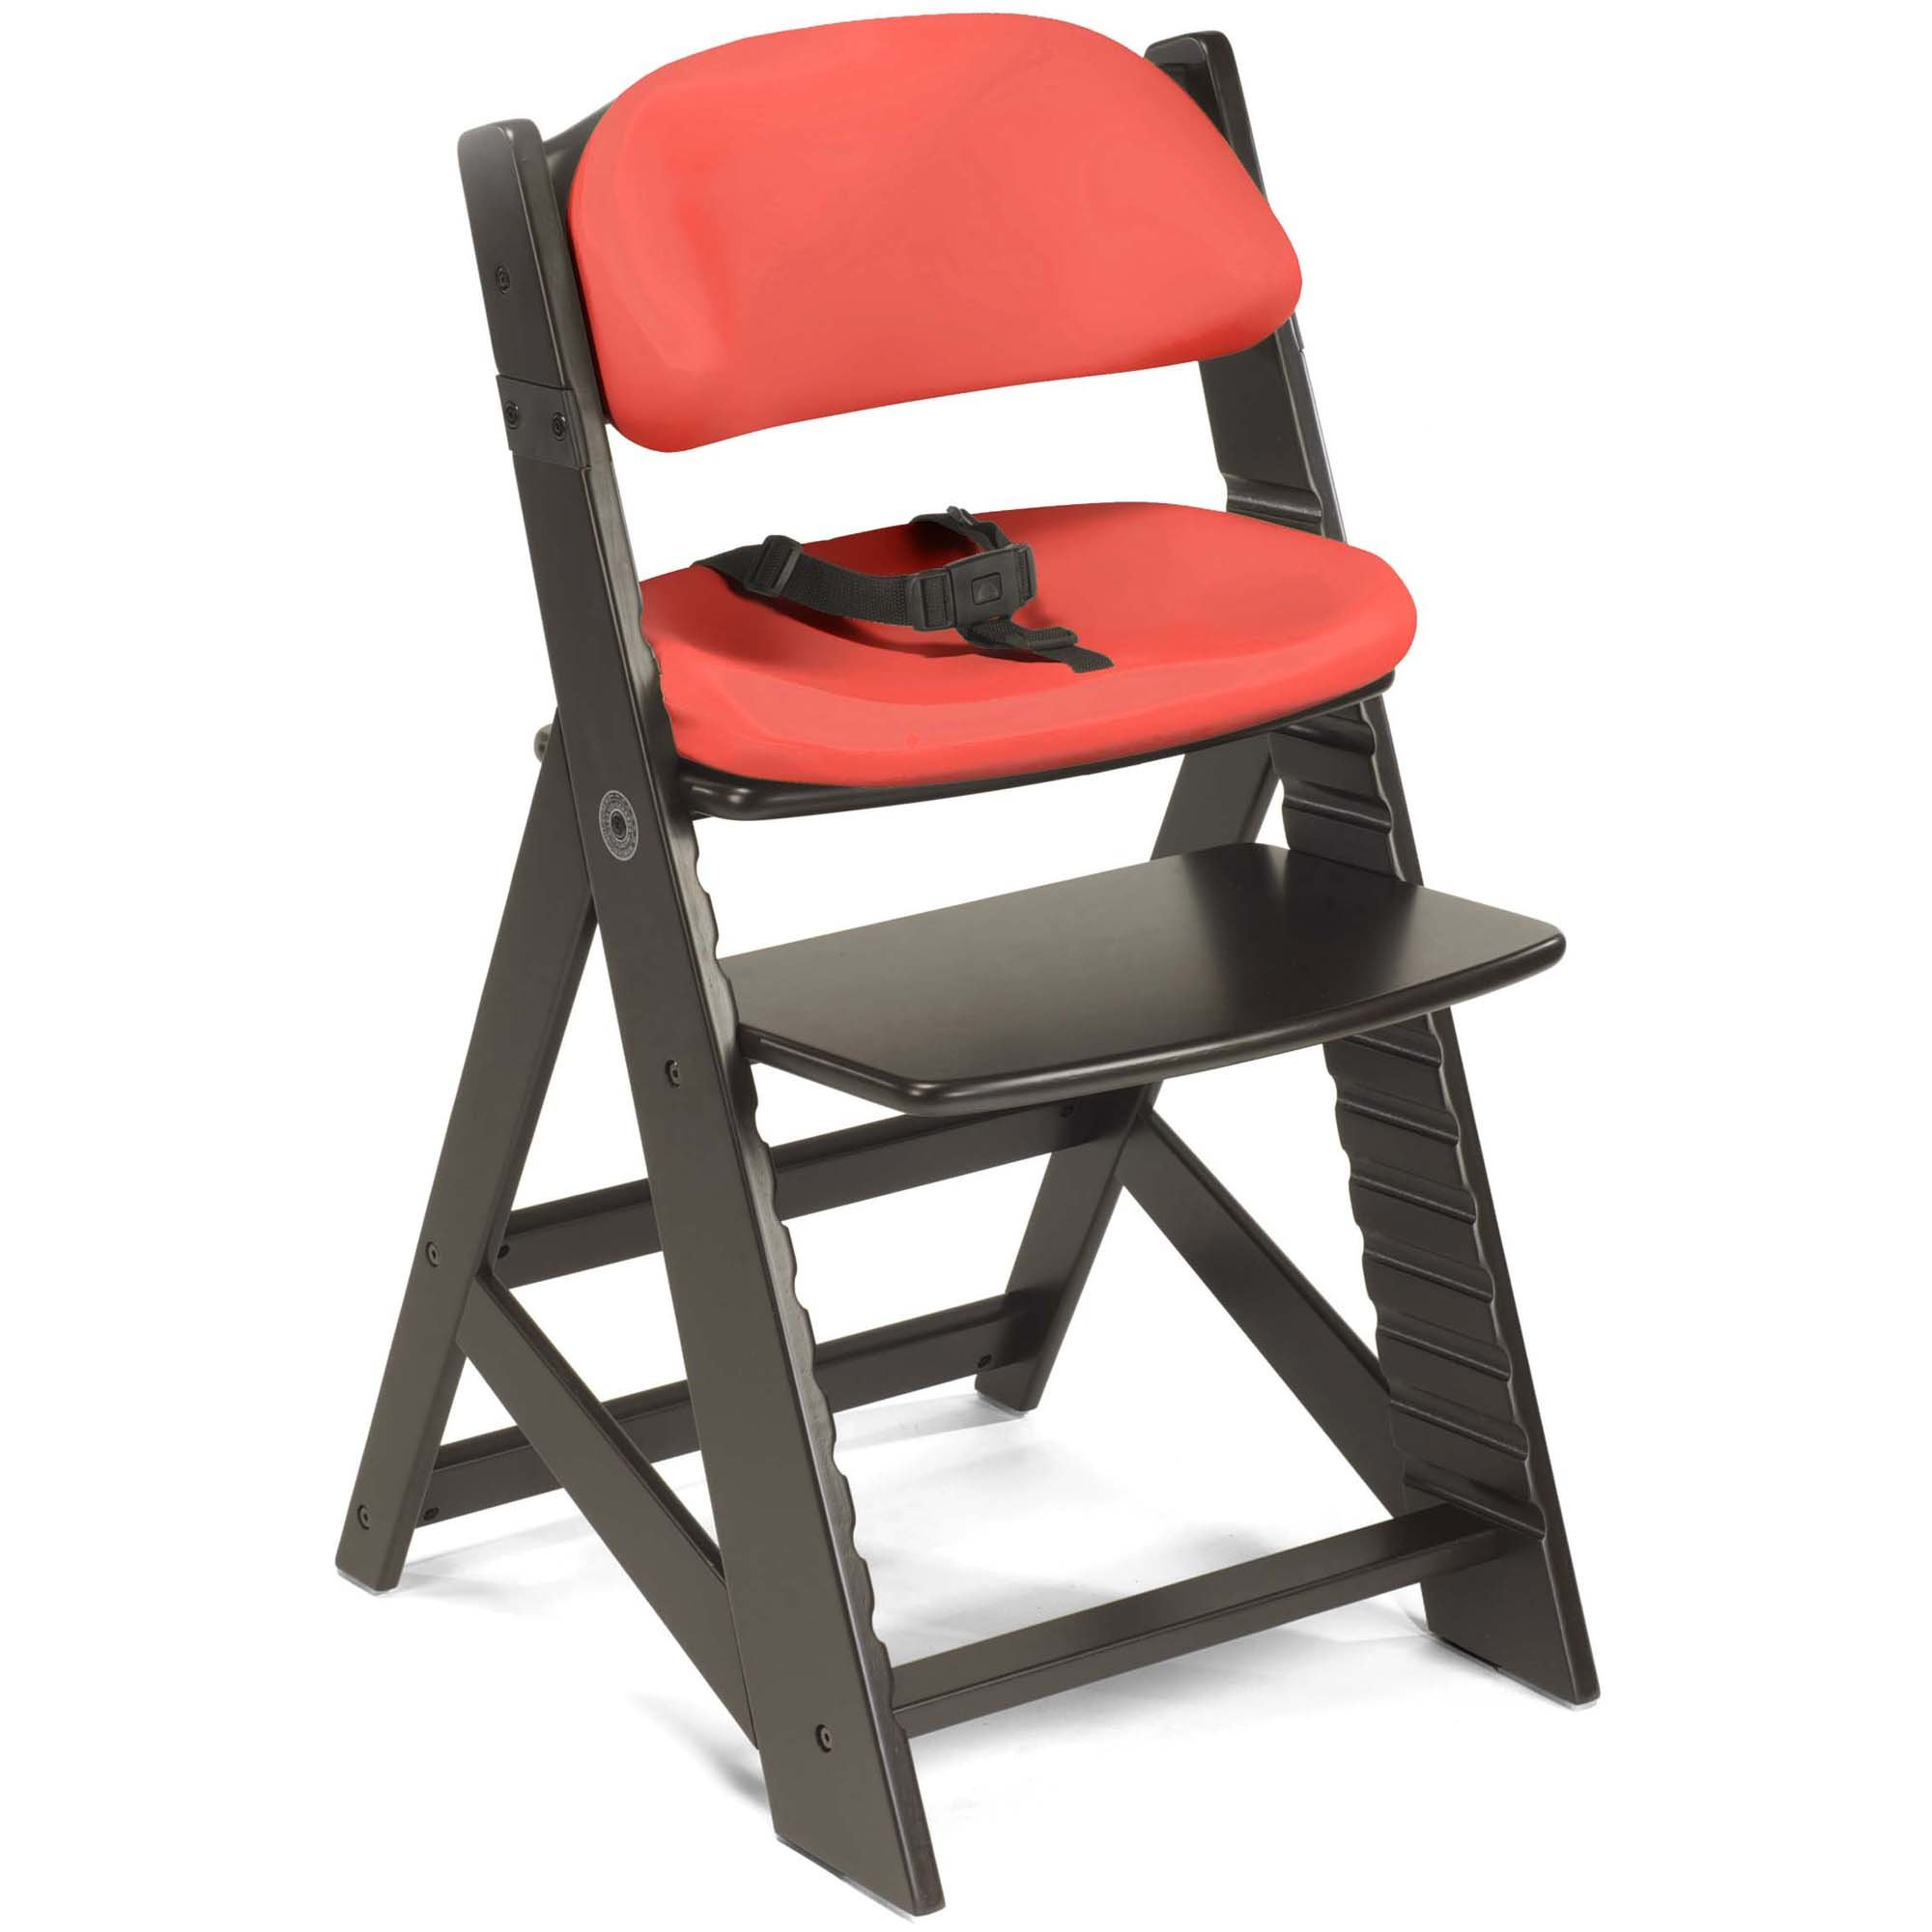 Keekaroo Height Right Kids Chair with Comfort Cushions - Cherry - Espresso Base